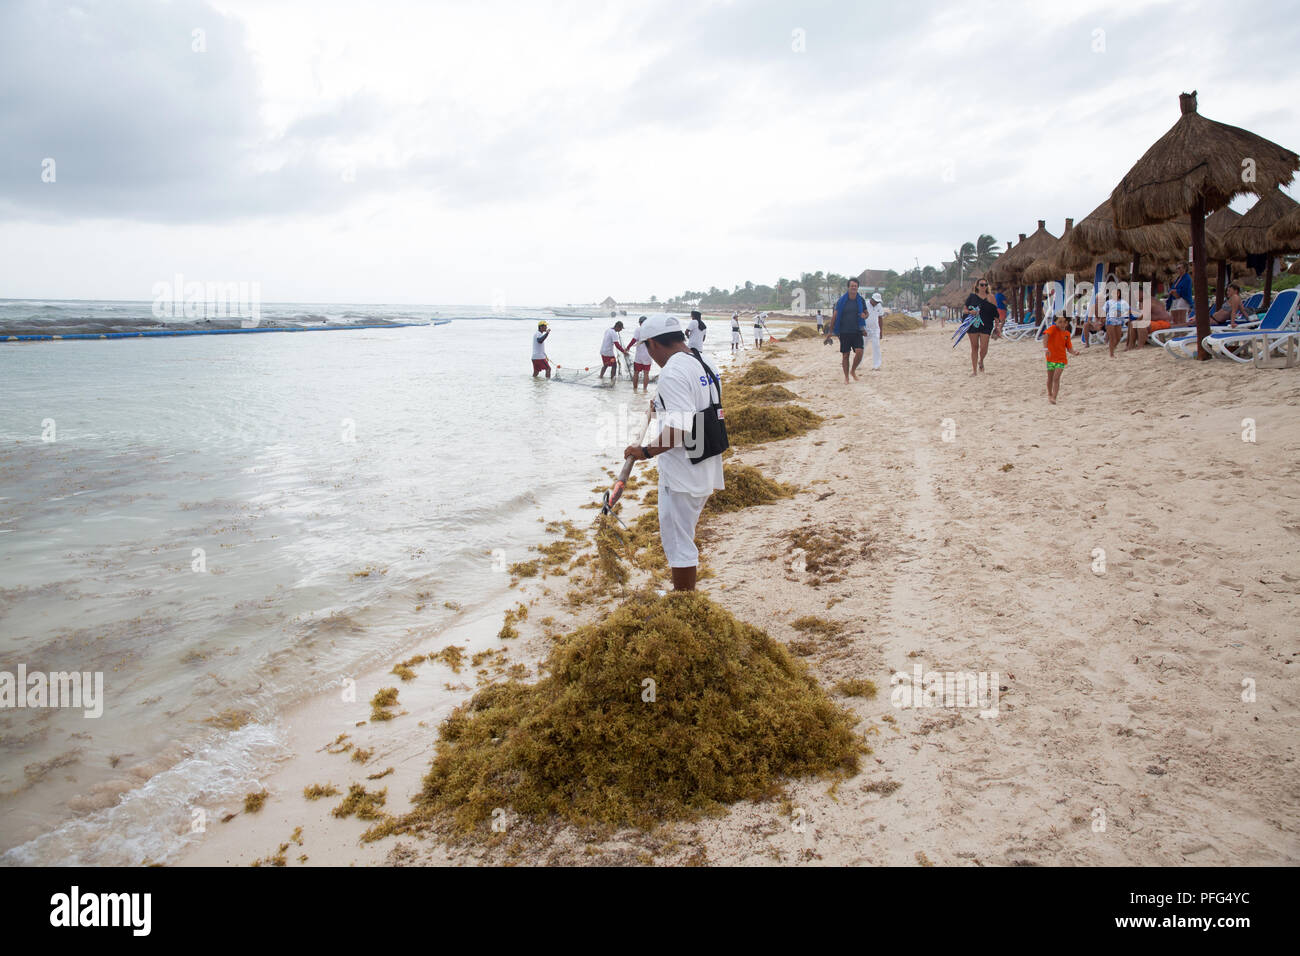 Workers remove Sargassum seaweed at Gran Bahia Principe Beach near Tulum, Quintana Roo state, Mexico on August 17, 2018. Sargassum—a brown seaweed that lives in the open ocean—has overwhelmed shorelines along the East Coast of the United States, Gulf of Mexico, and the Caribbean. Researchers say that the Sargassum outbreak started in 2011, but it has become worse over the years andcould cause a serious environmental disaster. As the Sargassum is cleaned up on the shorelines, in a matter of days the shorelines are once again filled.When the Sargassum seaweed lands and starts to decompose, a t - Stock Image